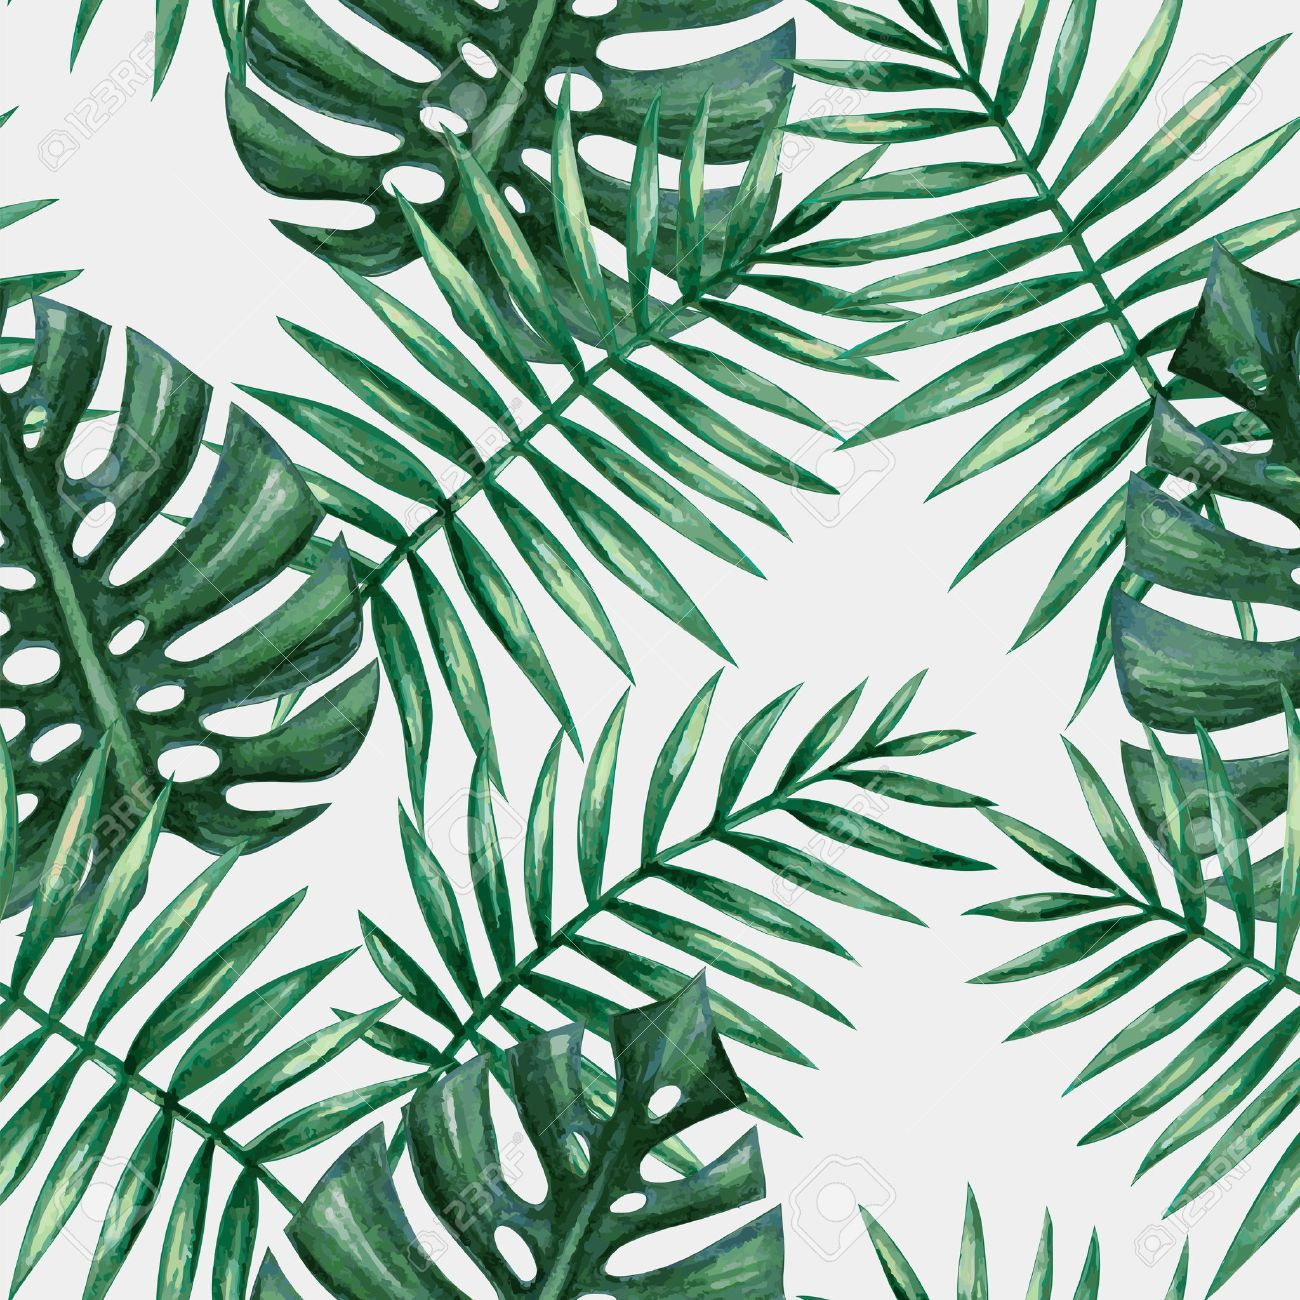 Watercolor tropical palm leaves seamless pattern. Vector illustration. - 52548317